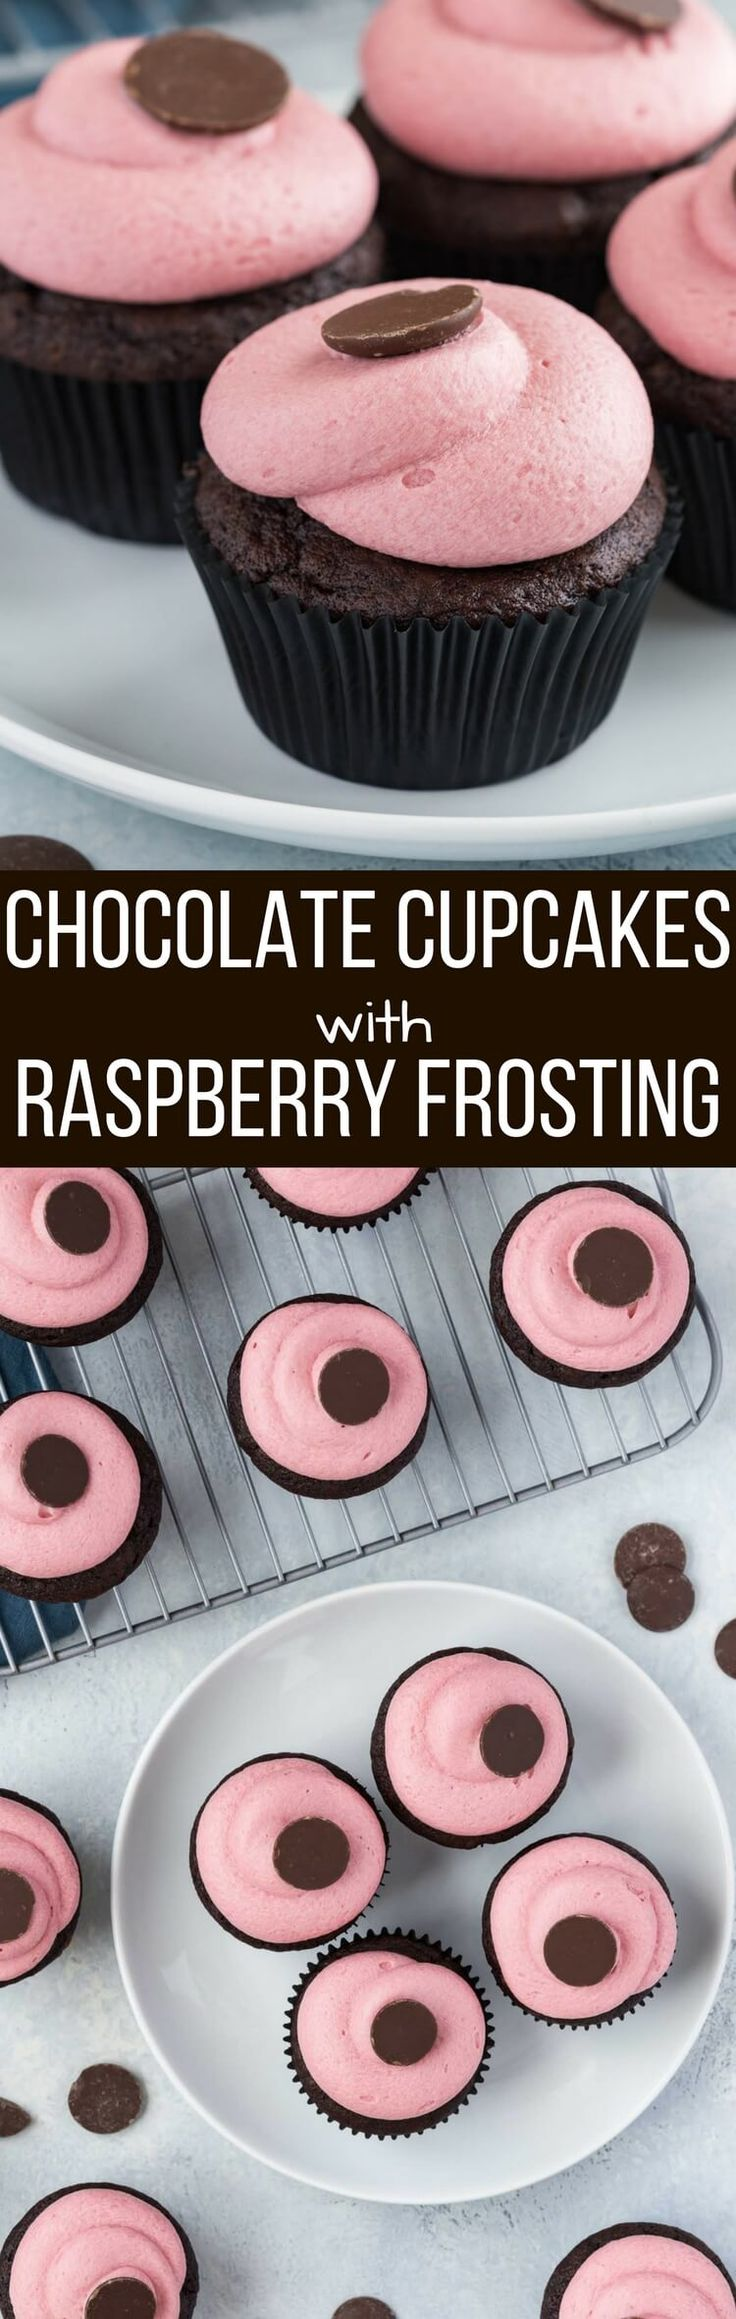 These Chocolate Raspberry Cupcakes are rich, moist decadent chocolate cupcakes topped with a luscious raspberry buttercream frosting! #ad #ComeBackNew @PrincessCruises